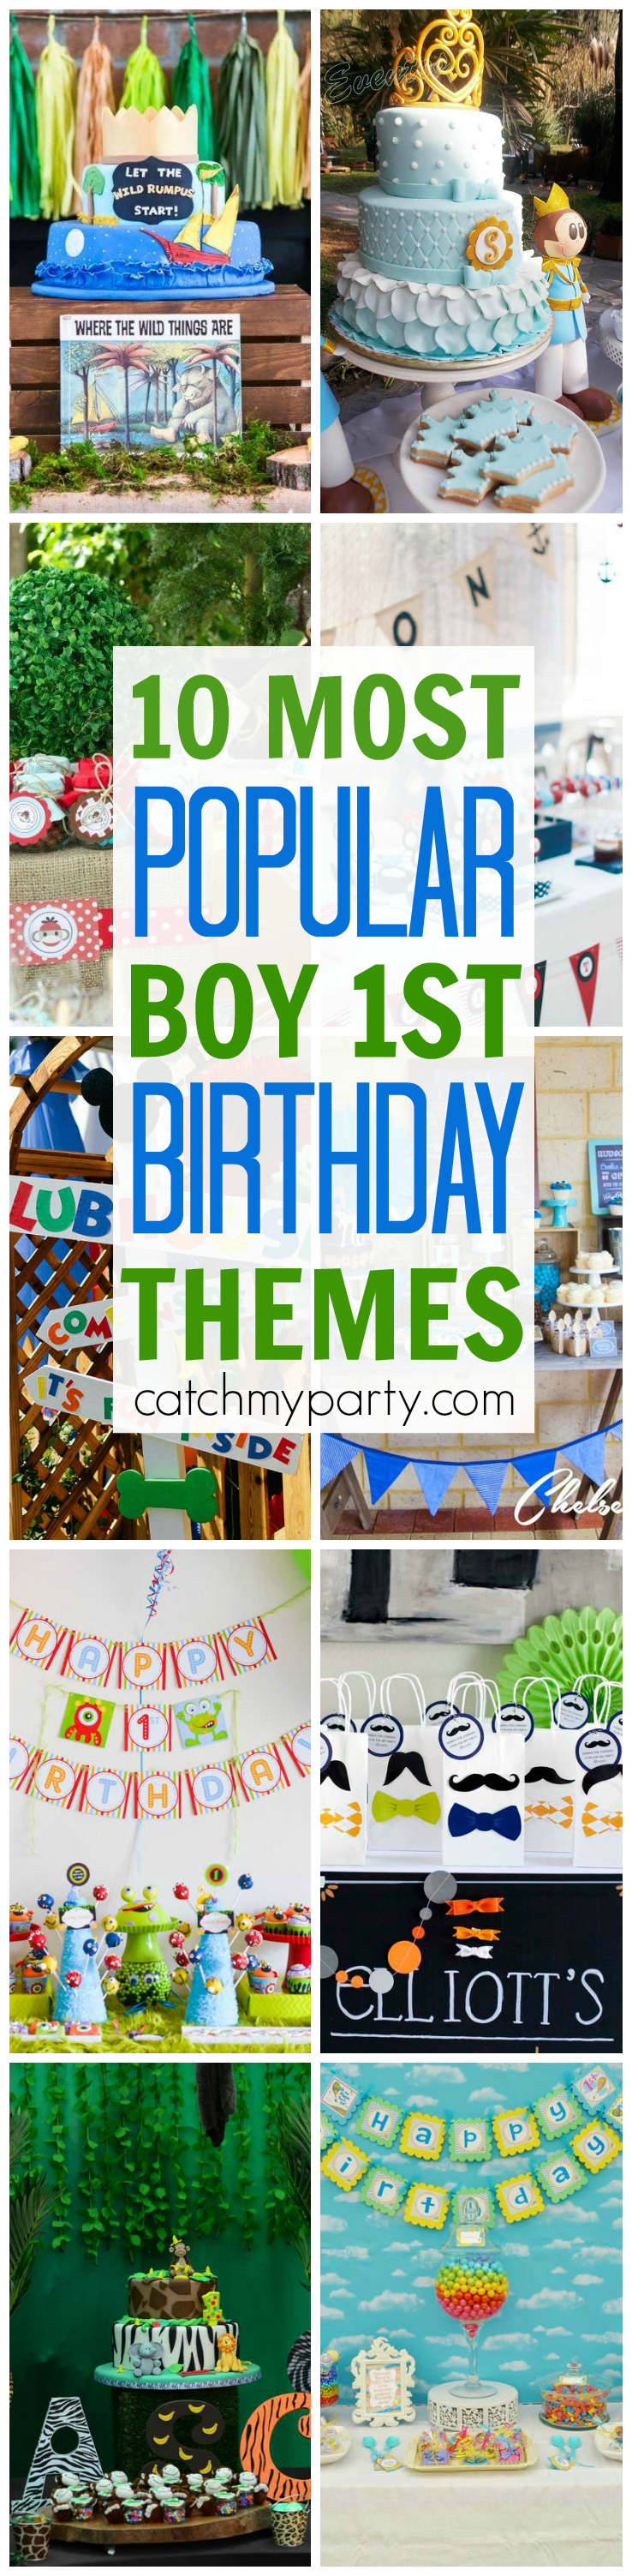 popular birthday party themes ; 10-most-popular-boy-1st-birthday-themes